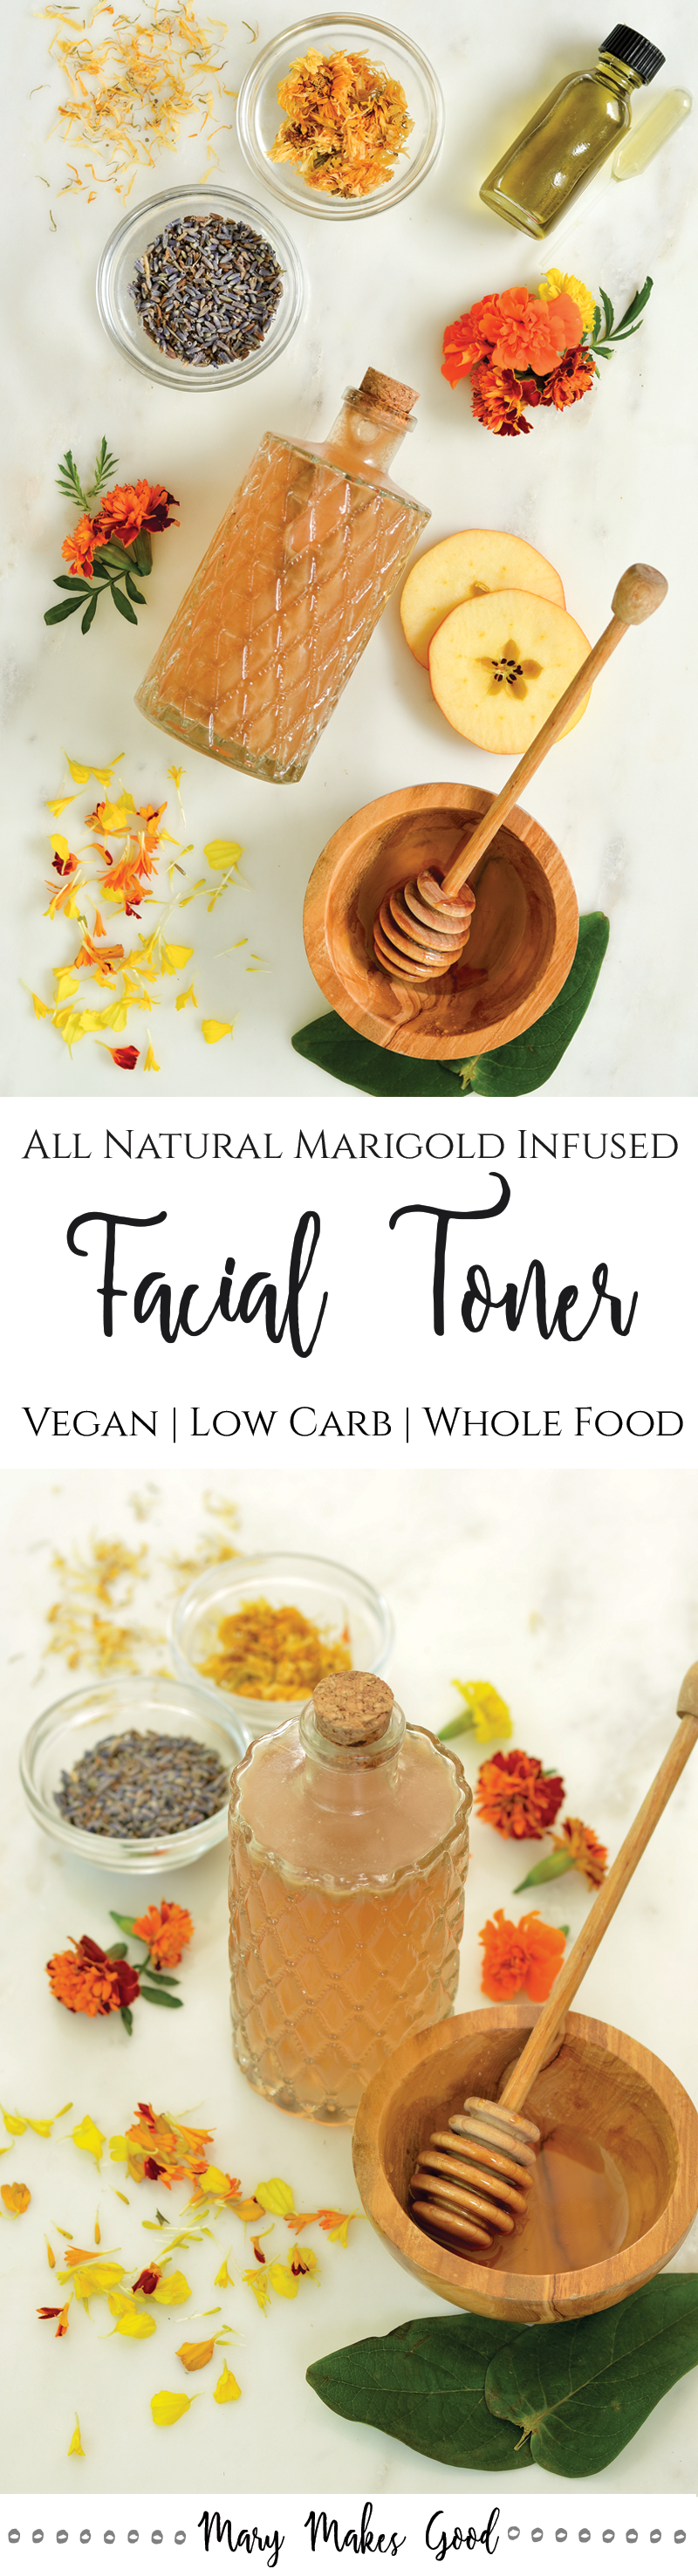 Make Your Own All-Natural Facial Toner with Marigolds  Honey  and Vinegar